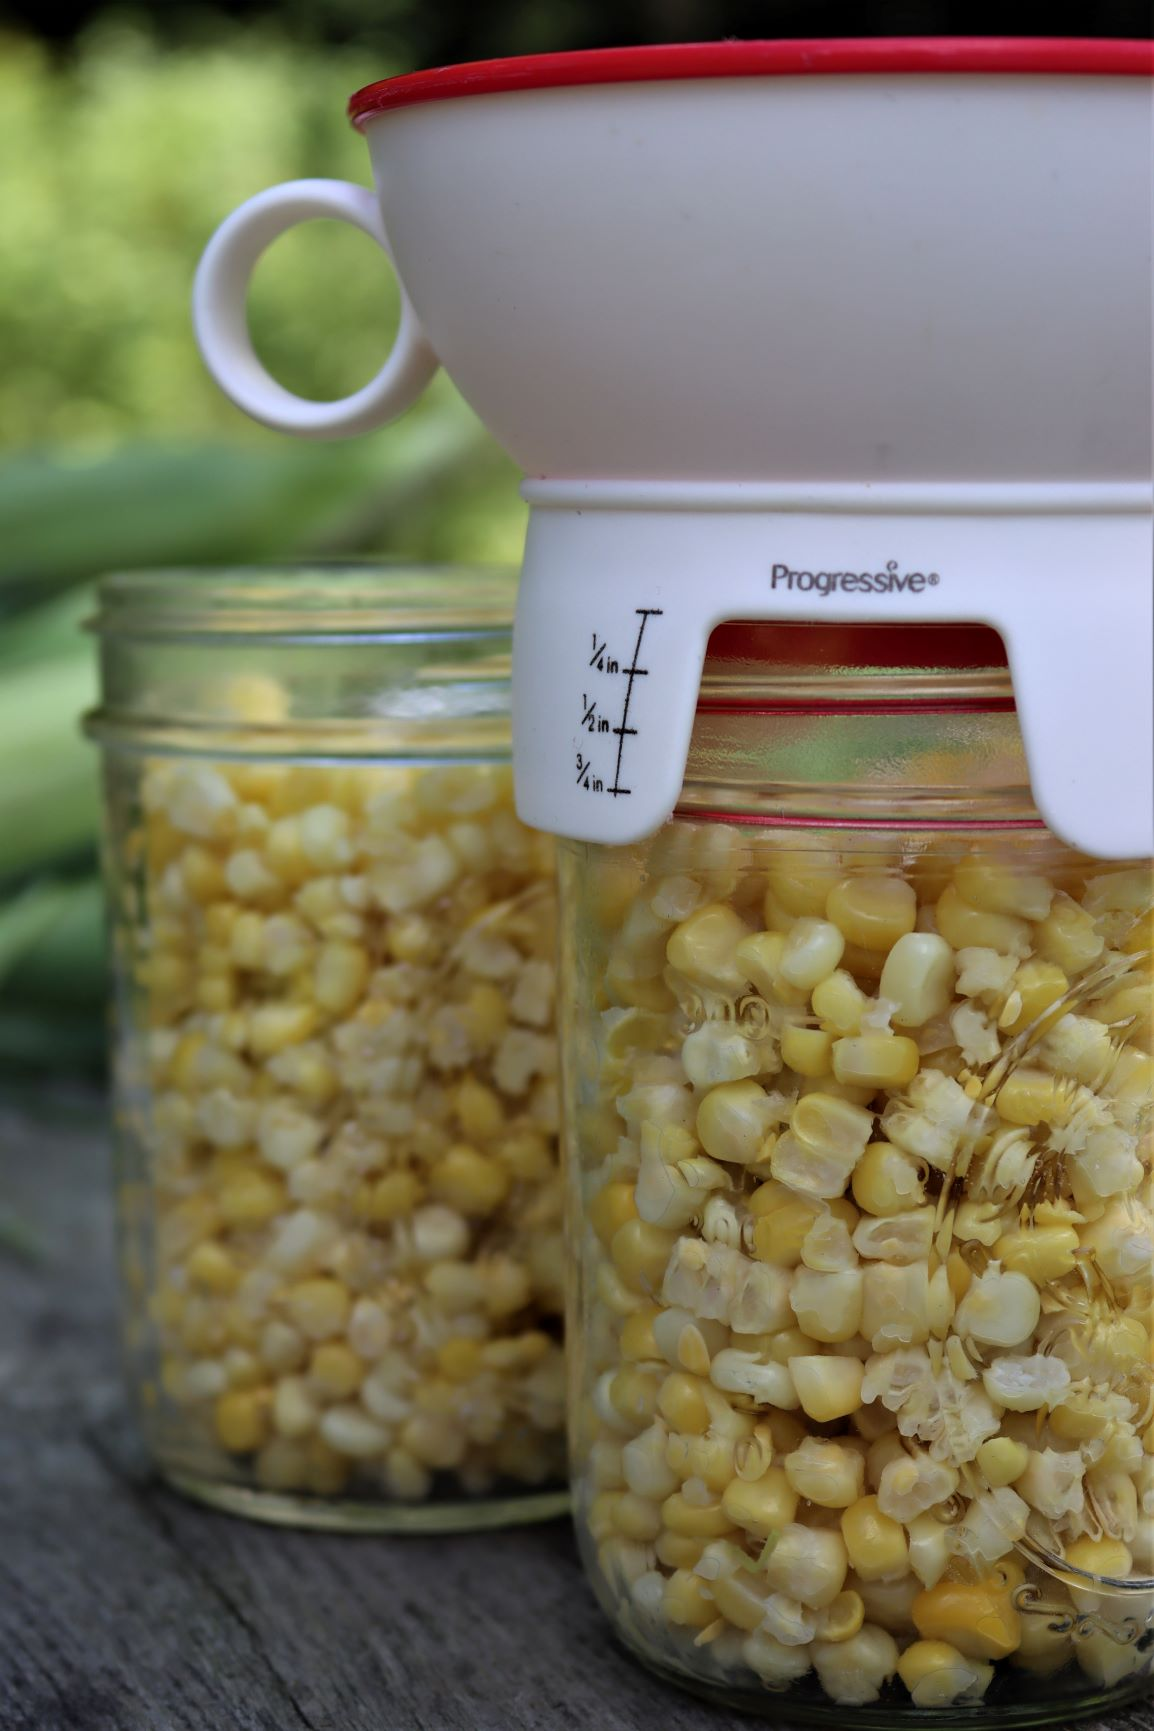 Headspace for Canning Corn